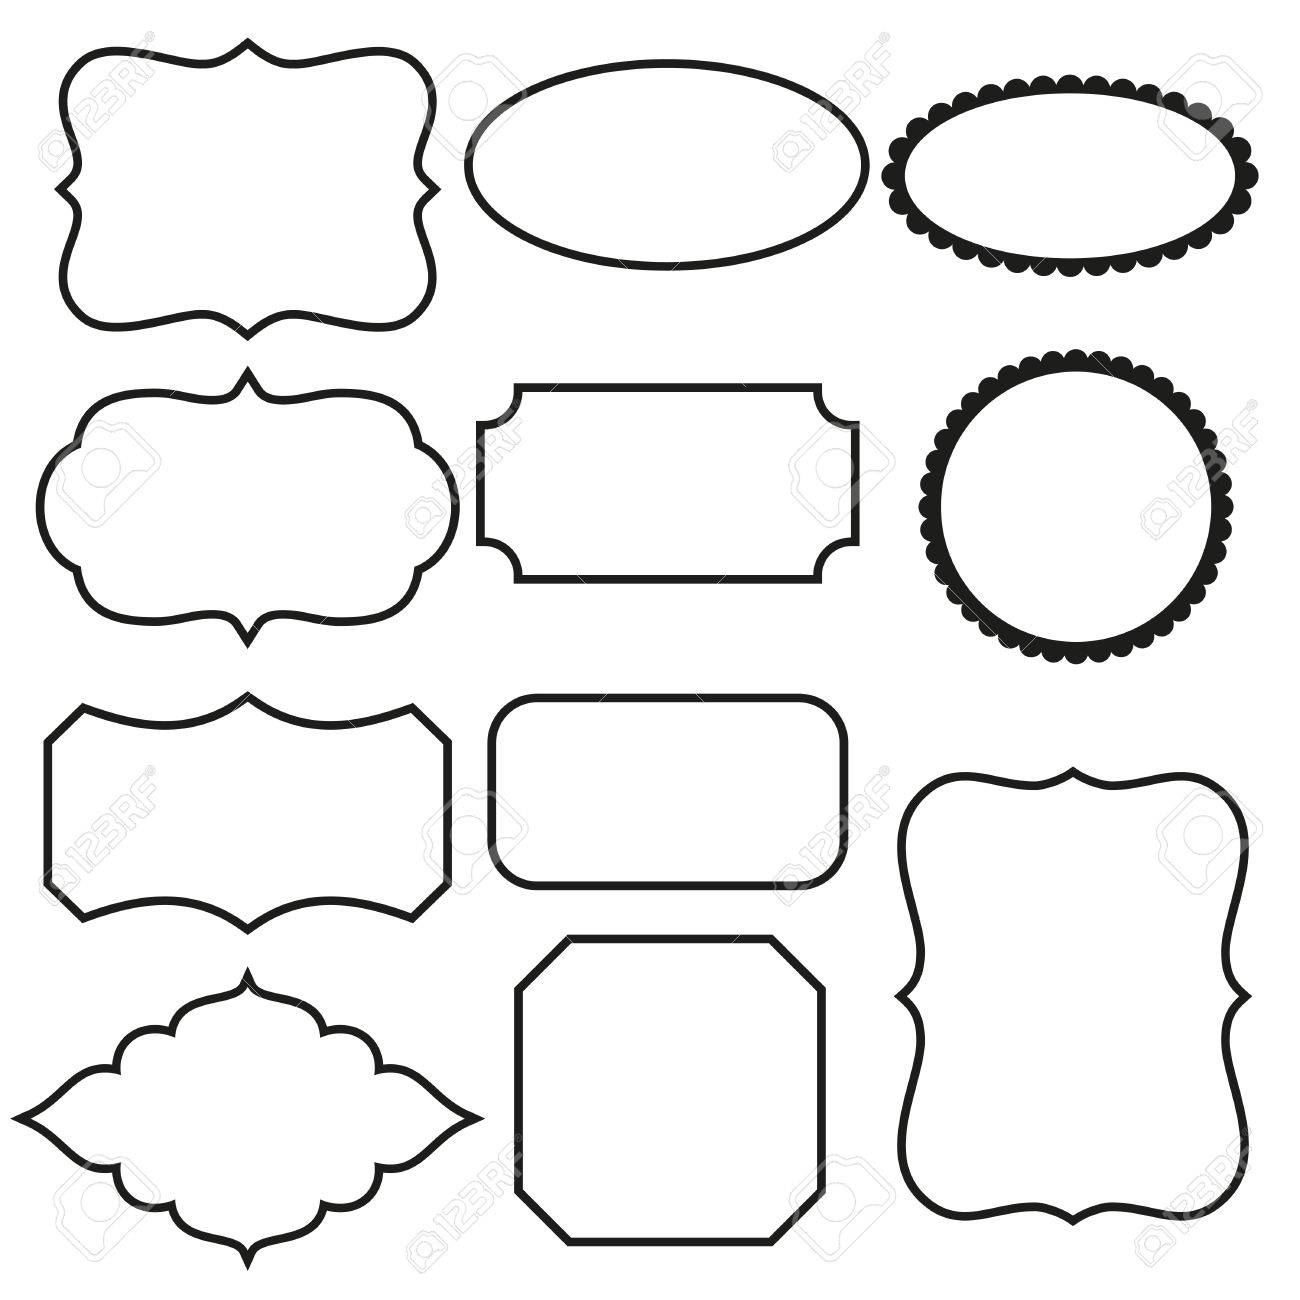 Black And White Decorative Frames Royalty Free Cliparts, Vectors ...